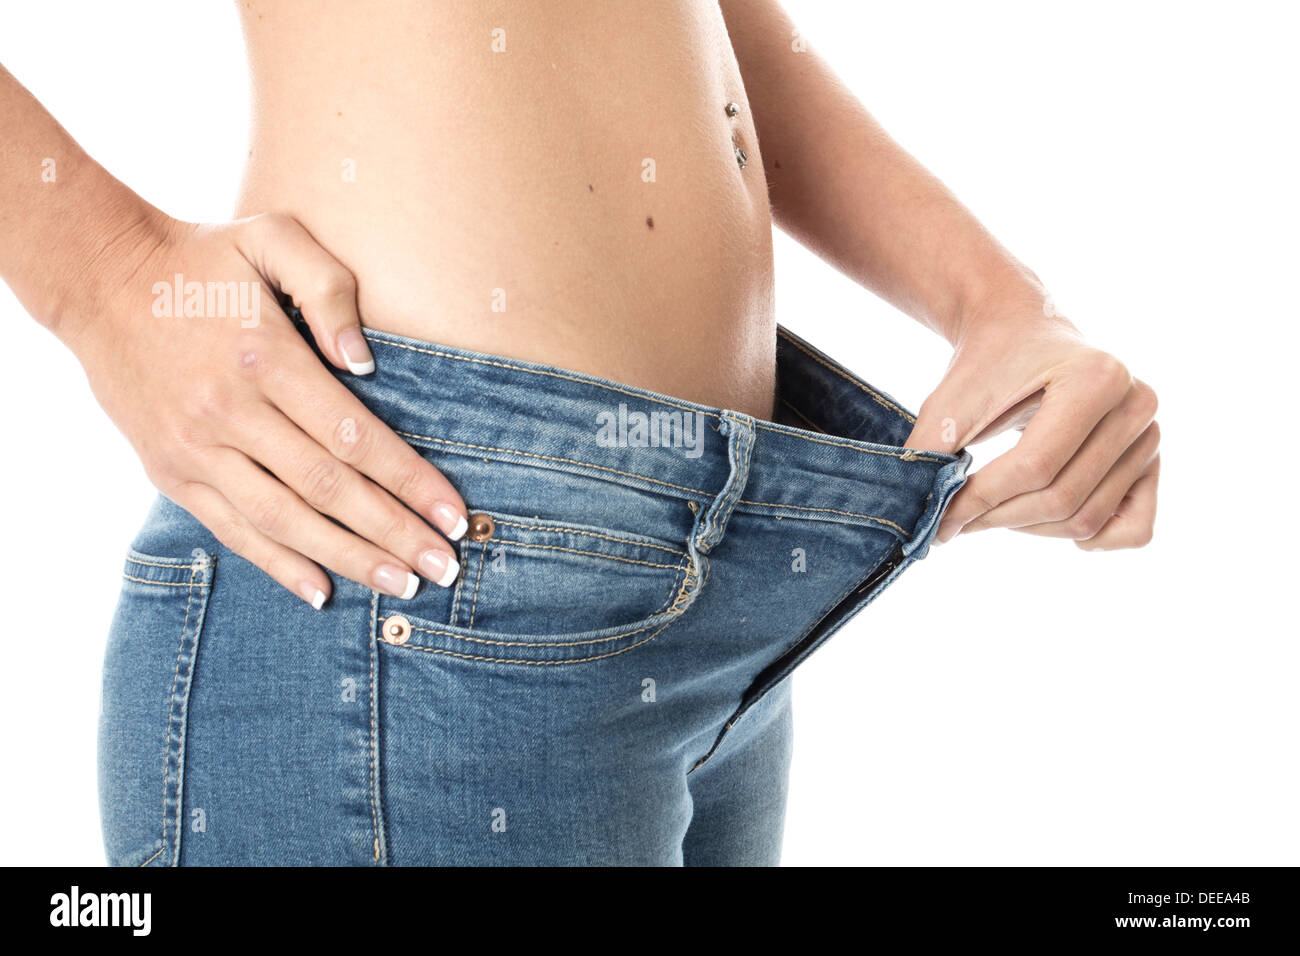 Model Released. Attractive Young Woman Showing Weight Loss - Stock Image